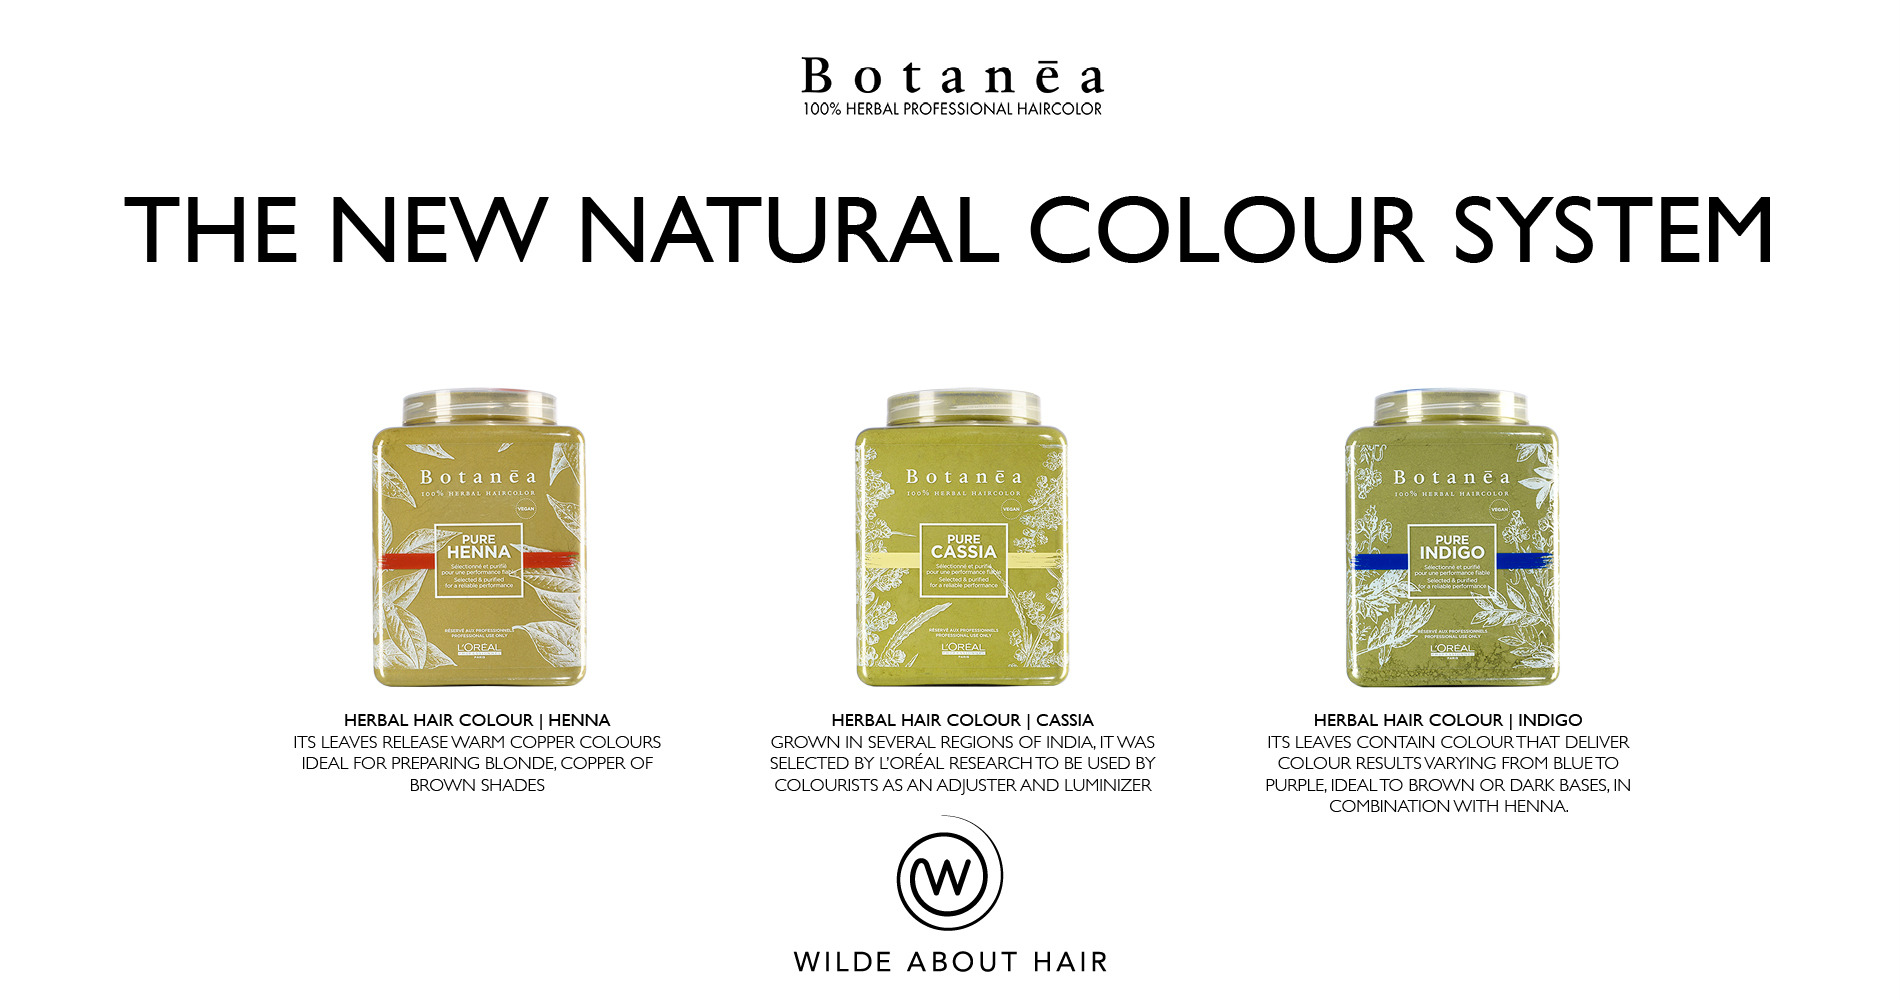 Botanea - The new natural colour system